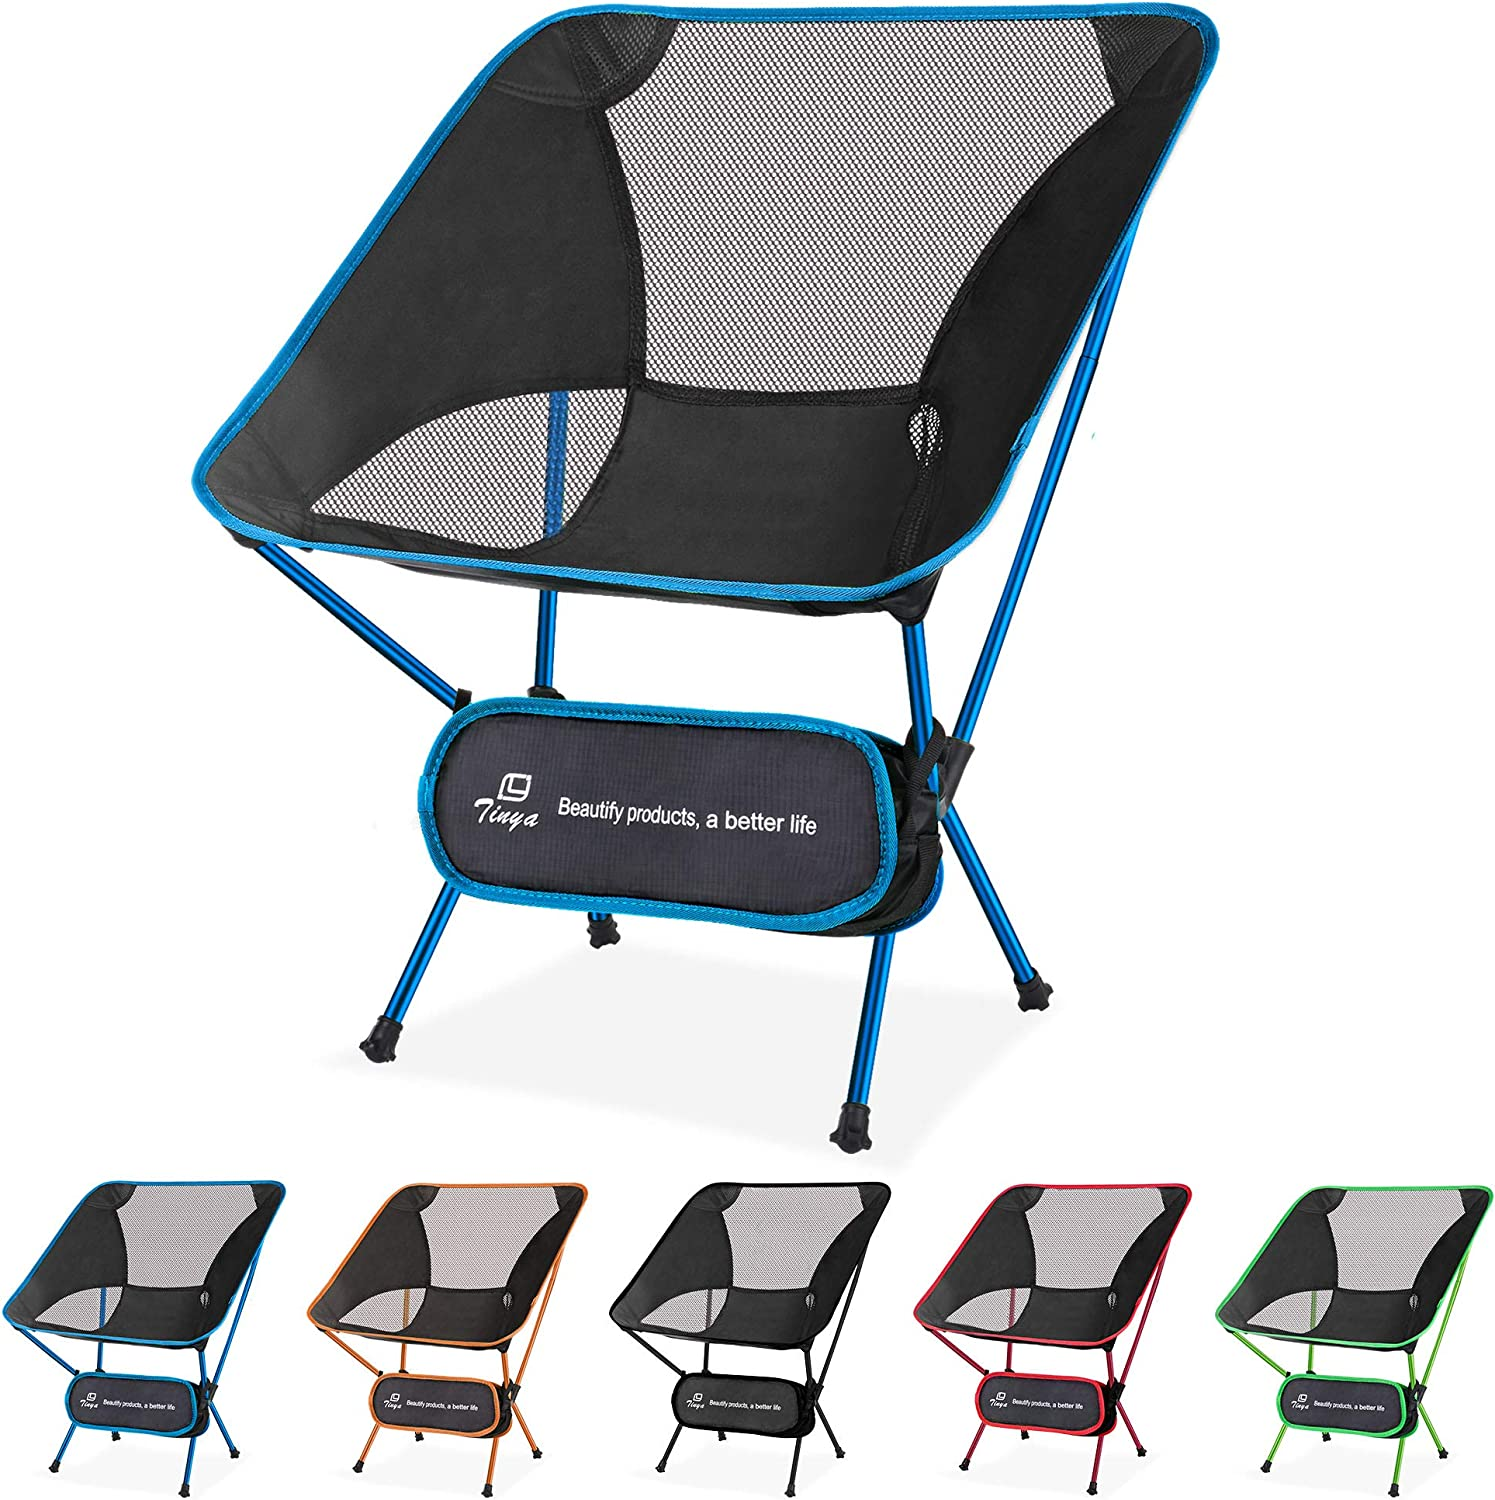 Tinya Ultralight Backpacking Camping safety Large discharge sale Backpacker Chair: He Adults